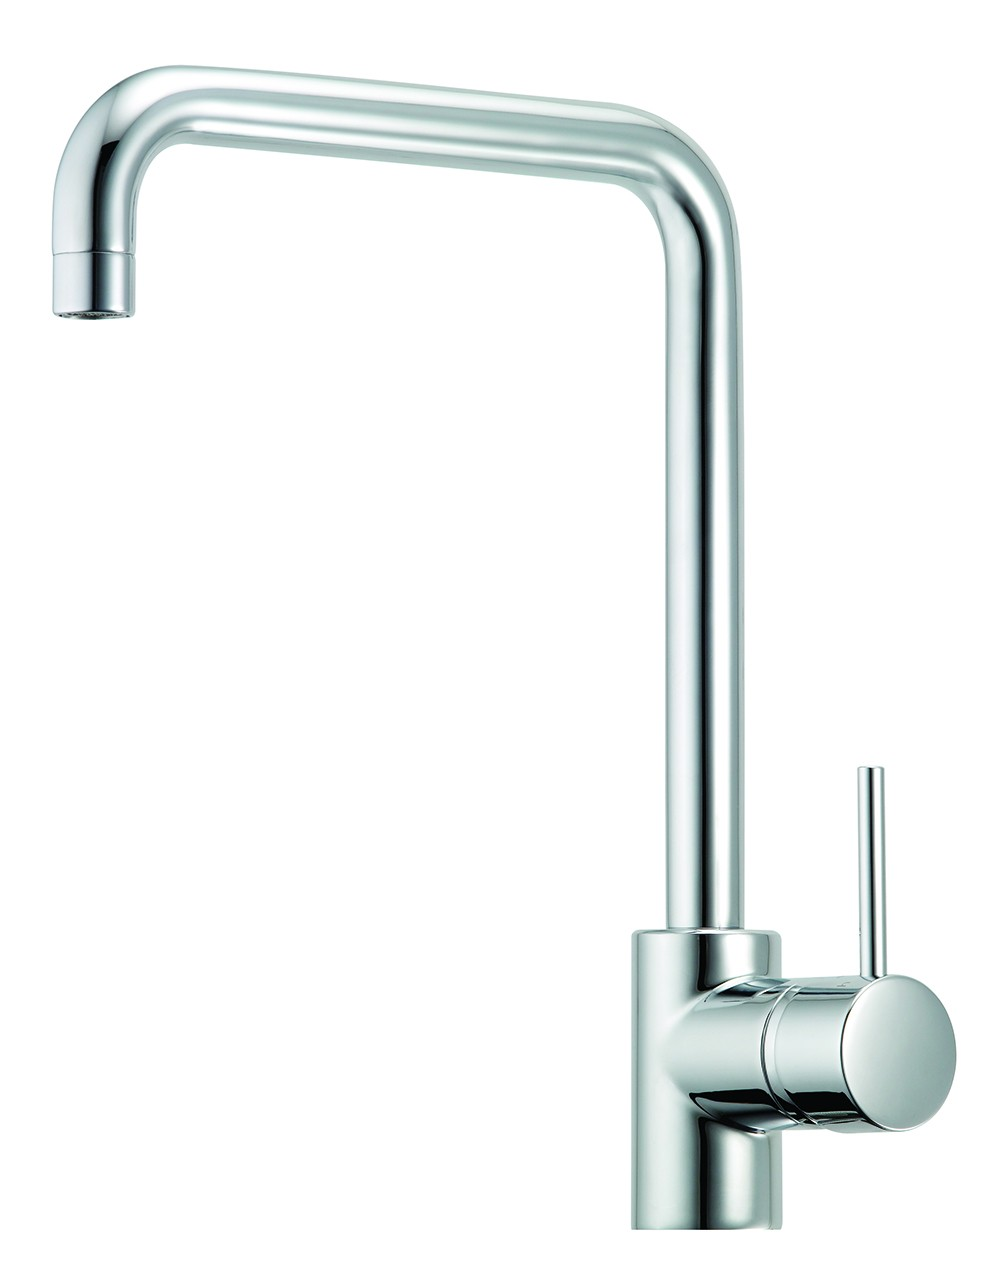 MIN. SQUARE NECK SINK MIXER CHROME 6 STAR